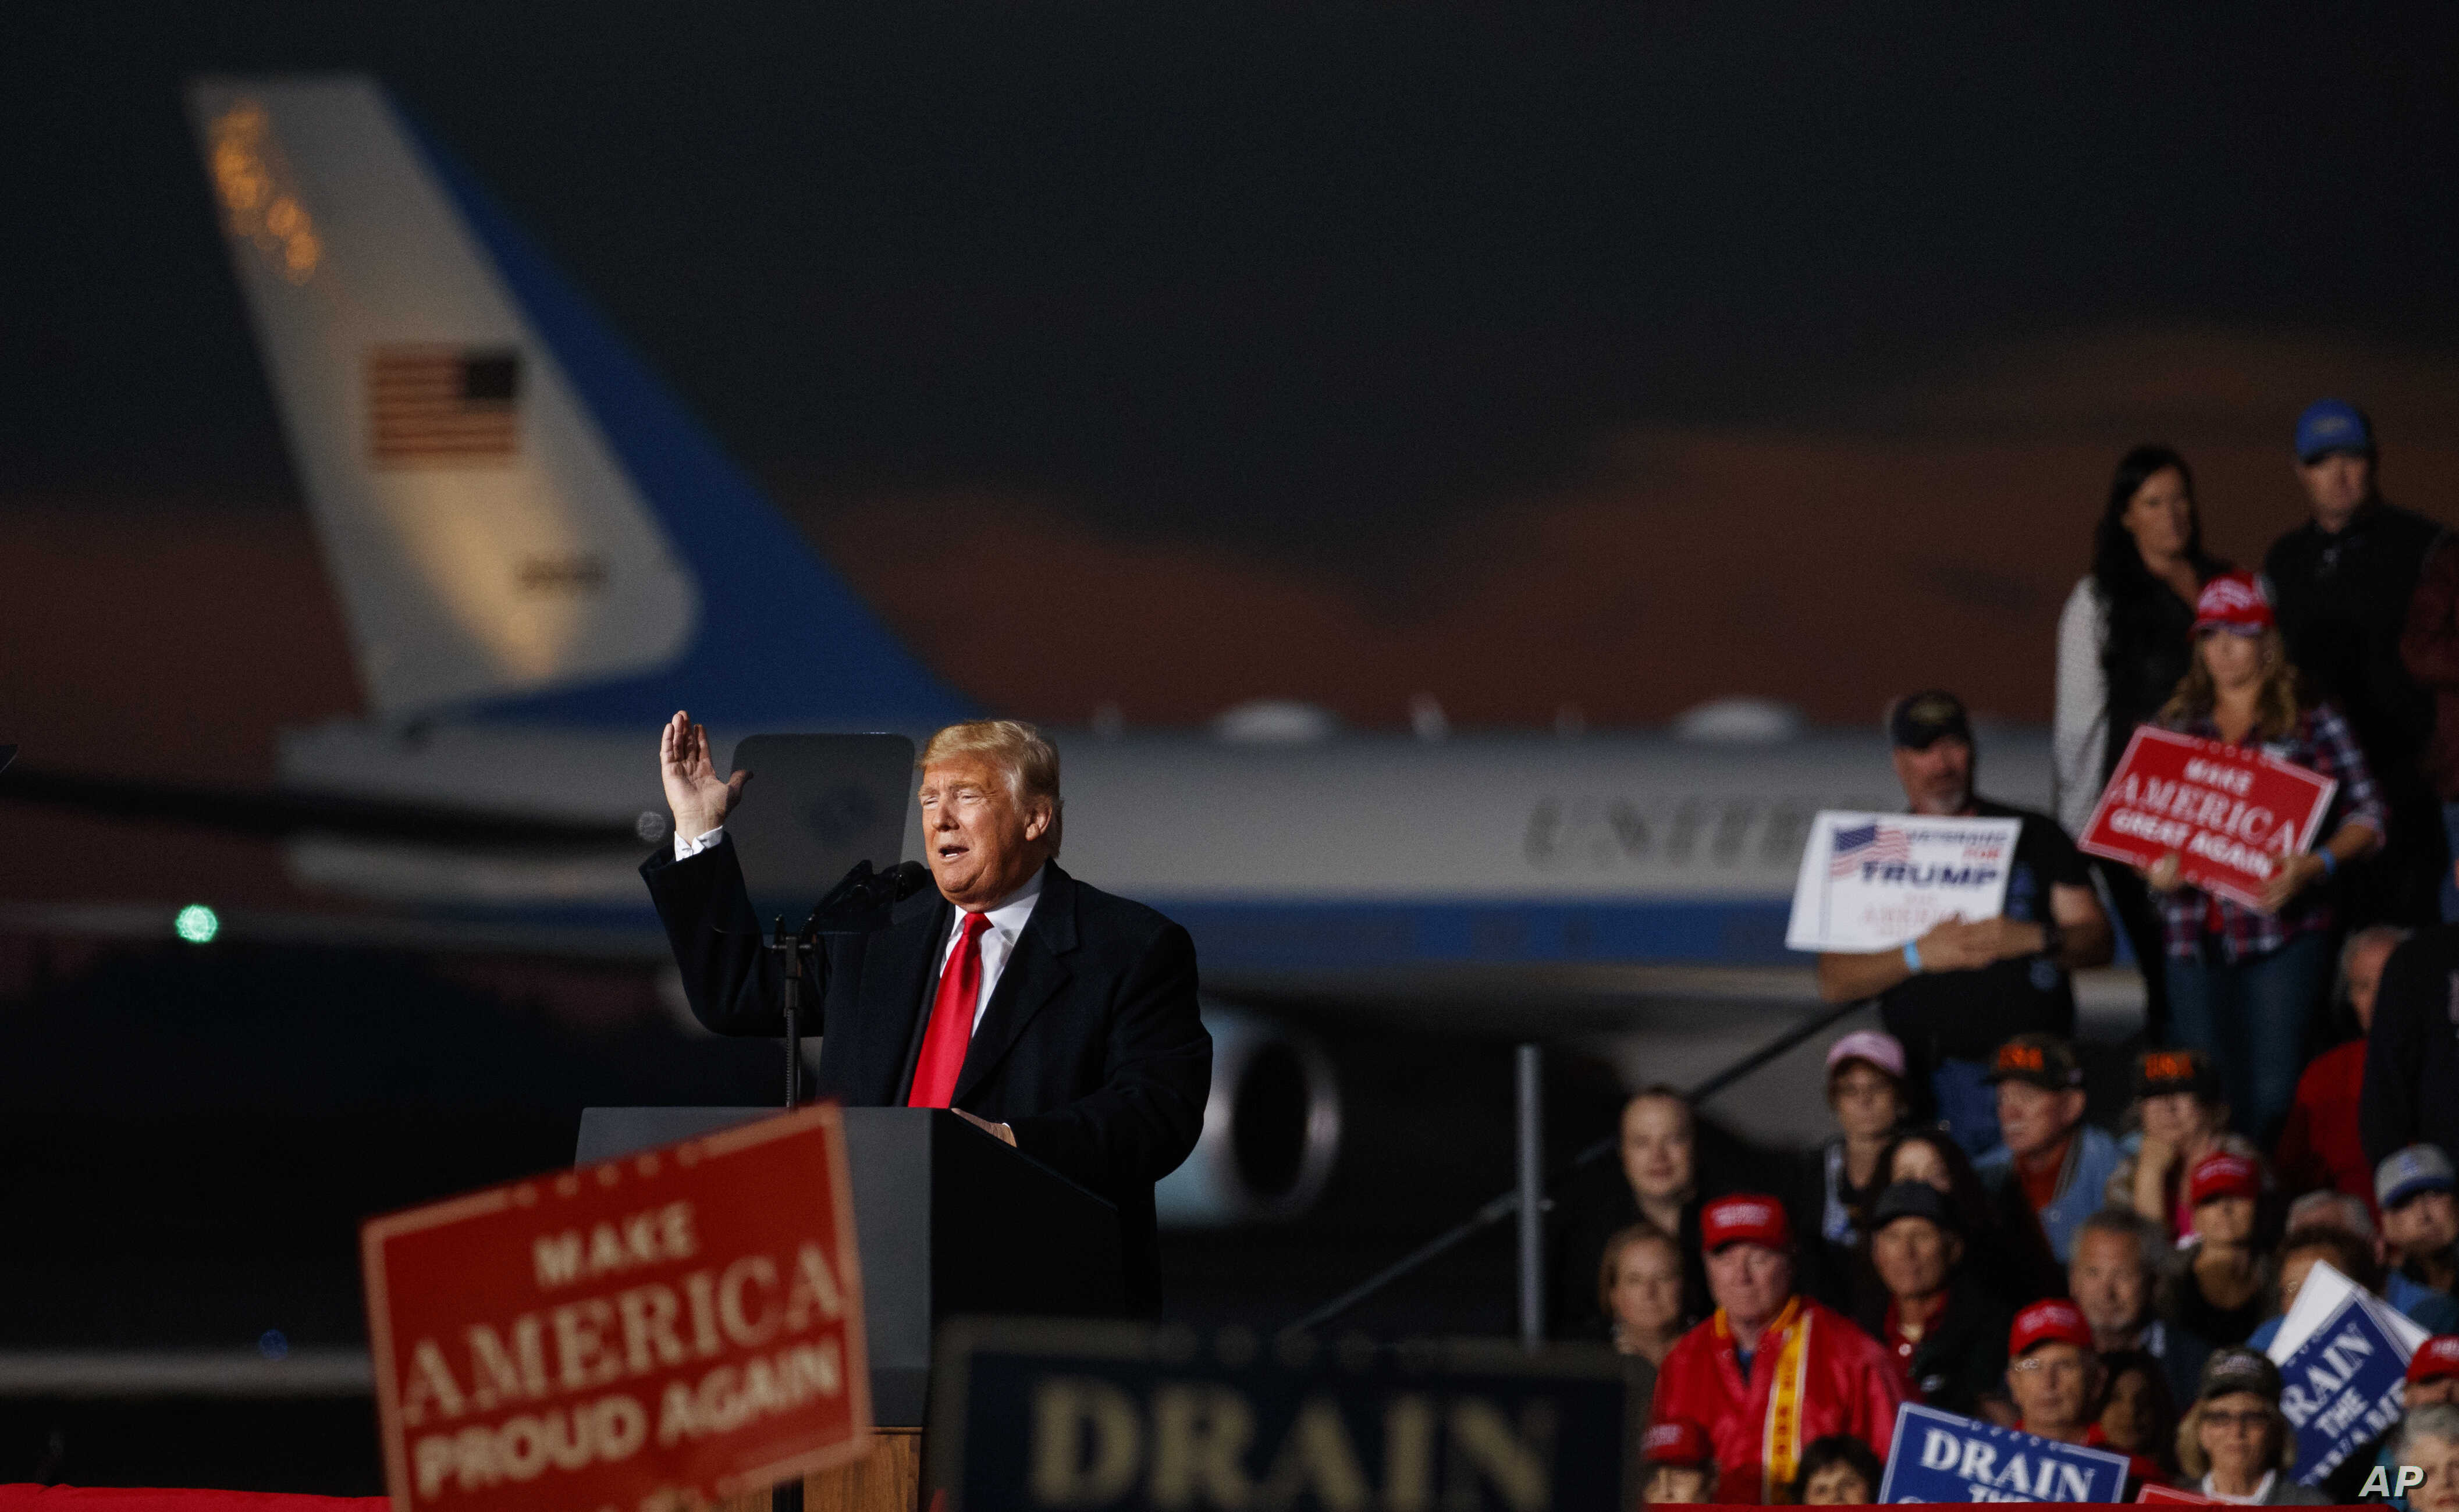 President Donald Trump speaks at a campaign rally at Minuteman Aviation Hangar, Oct. 18, 2018, in Missoula, Mont.